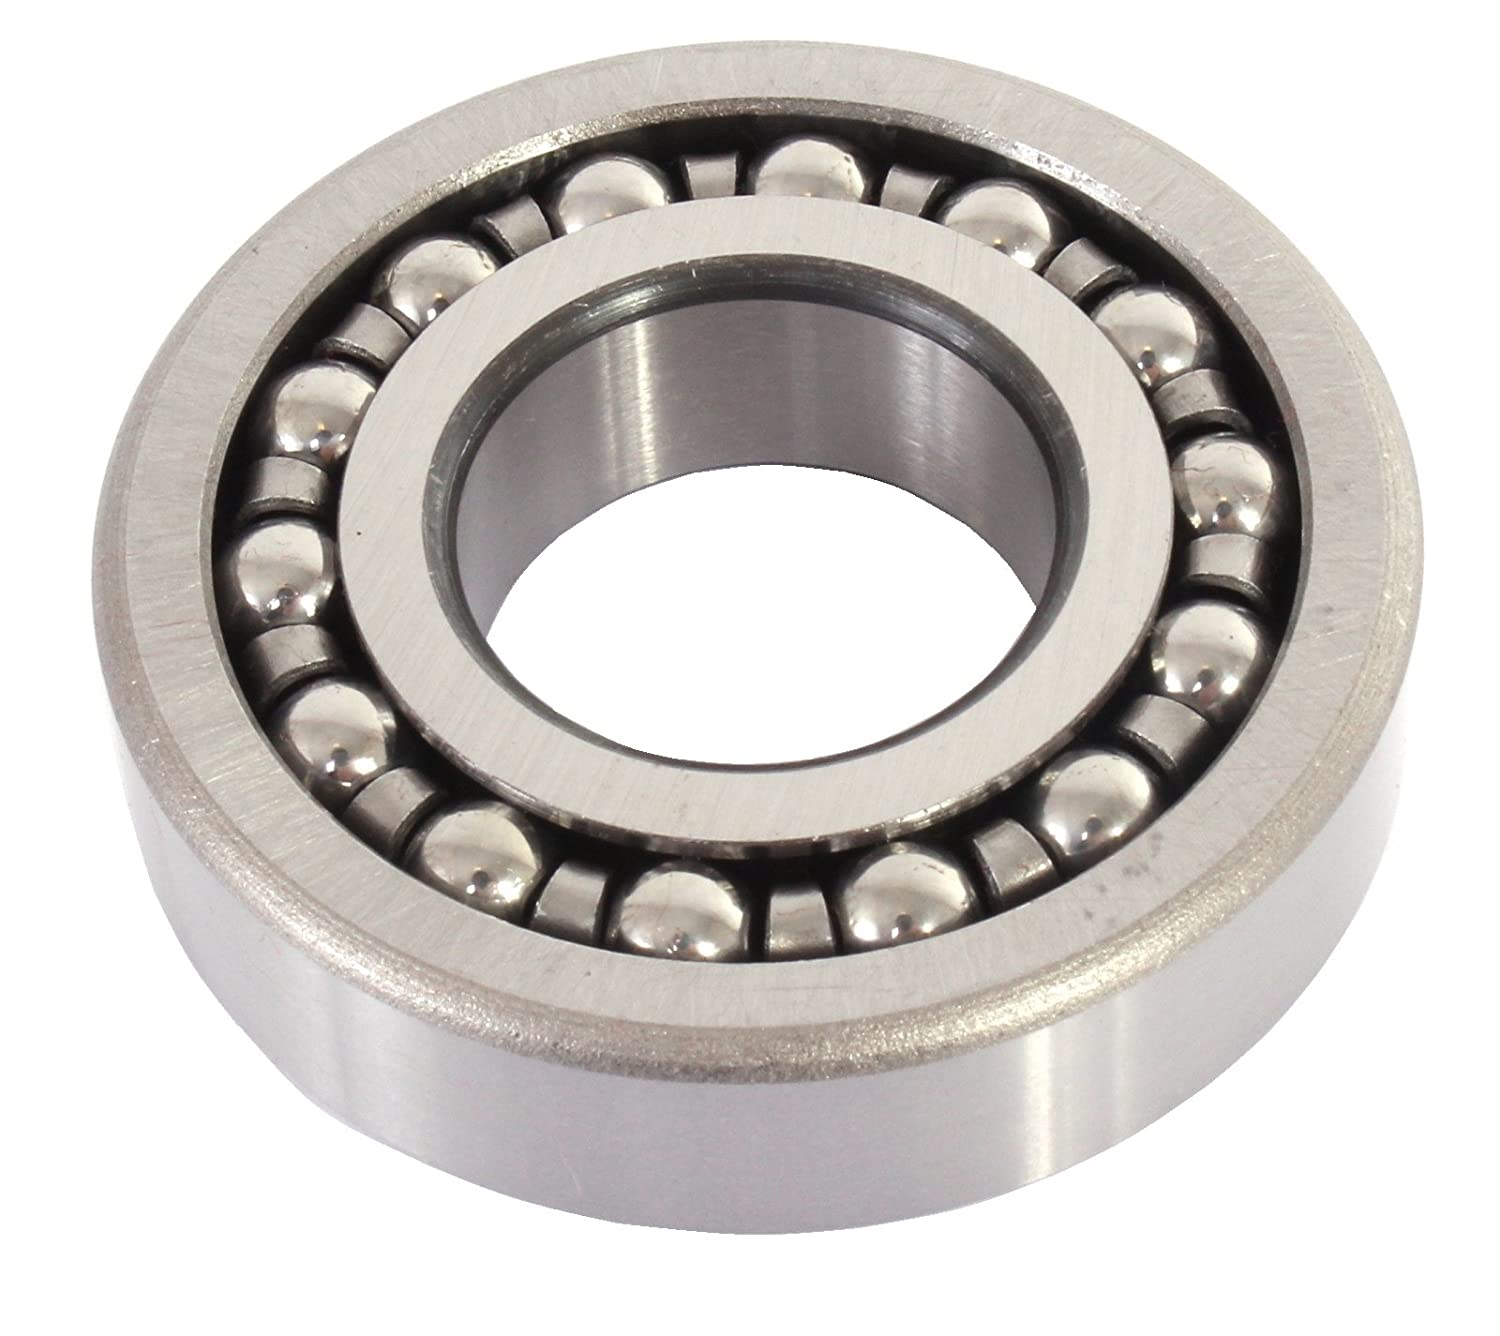 Inch Skf Rl22 Self Aligning Ball Bearing